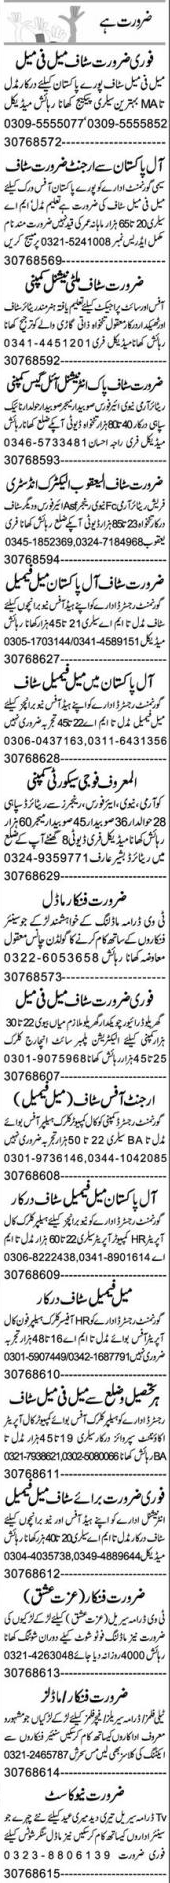 Daily Express Newspaper Classified Jobs 2021 in Faisalabad